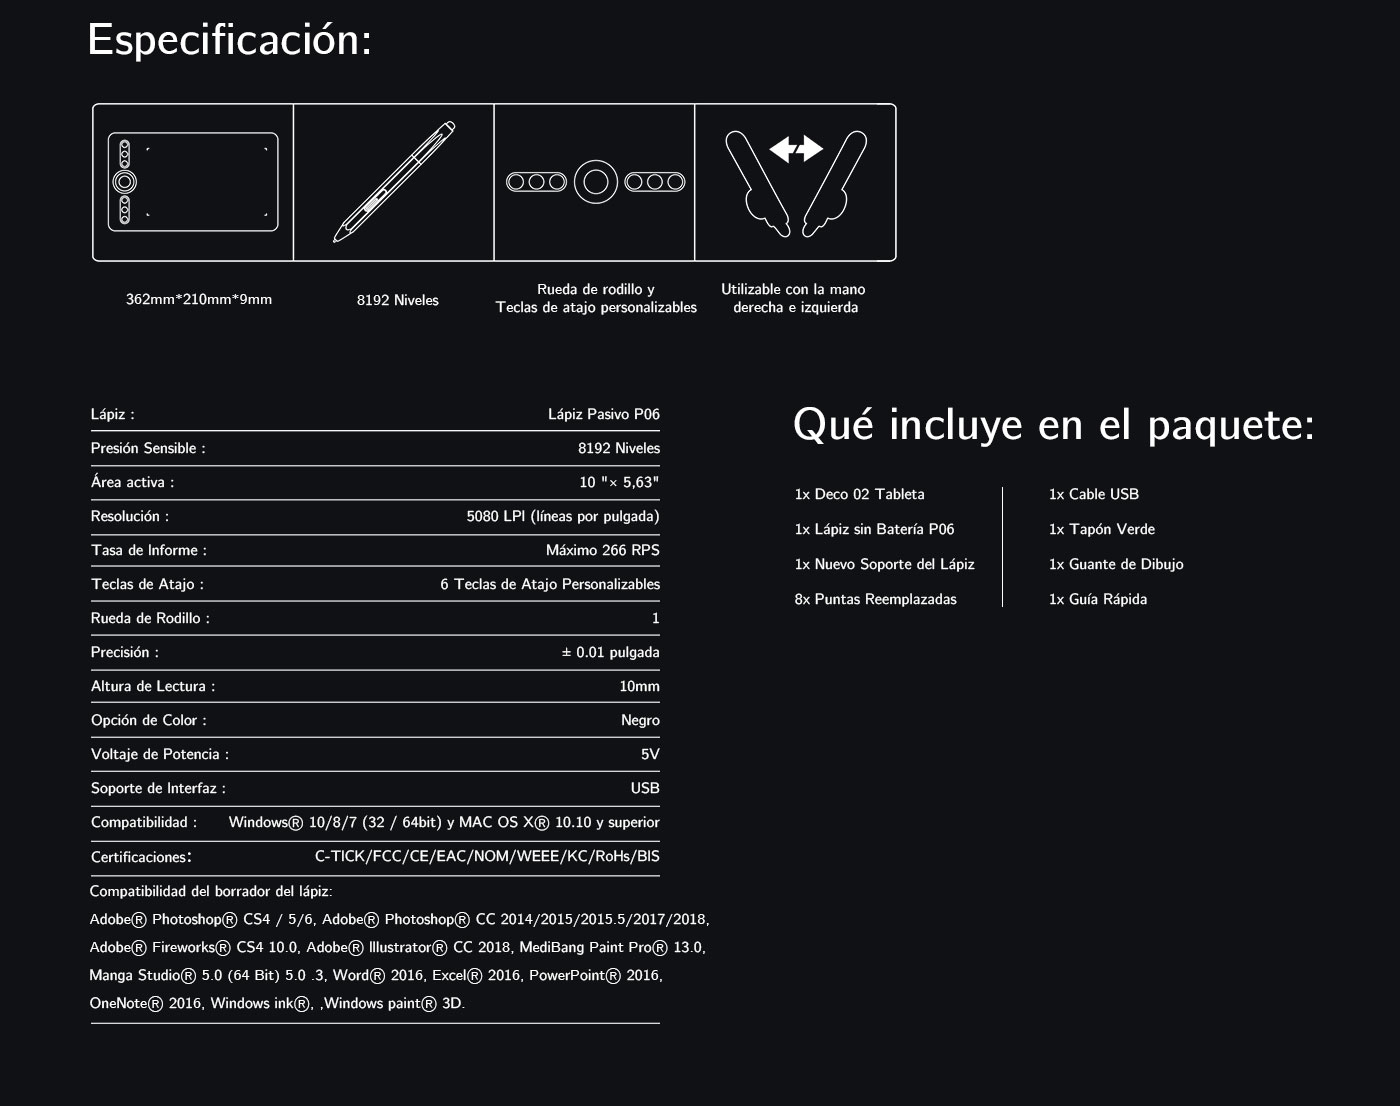 Especificaciones de tableta gráfica XP-Pen Deco 02